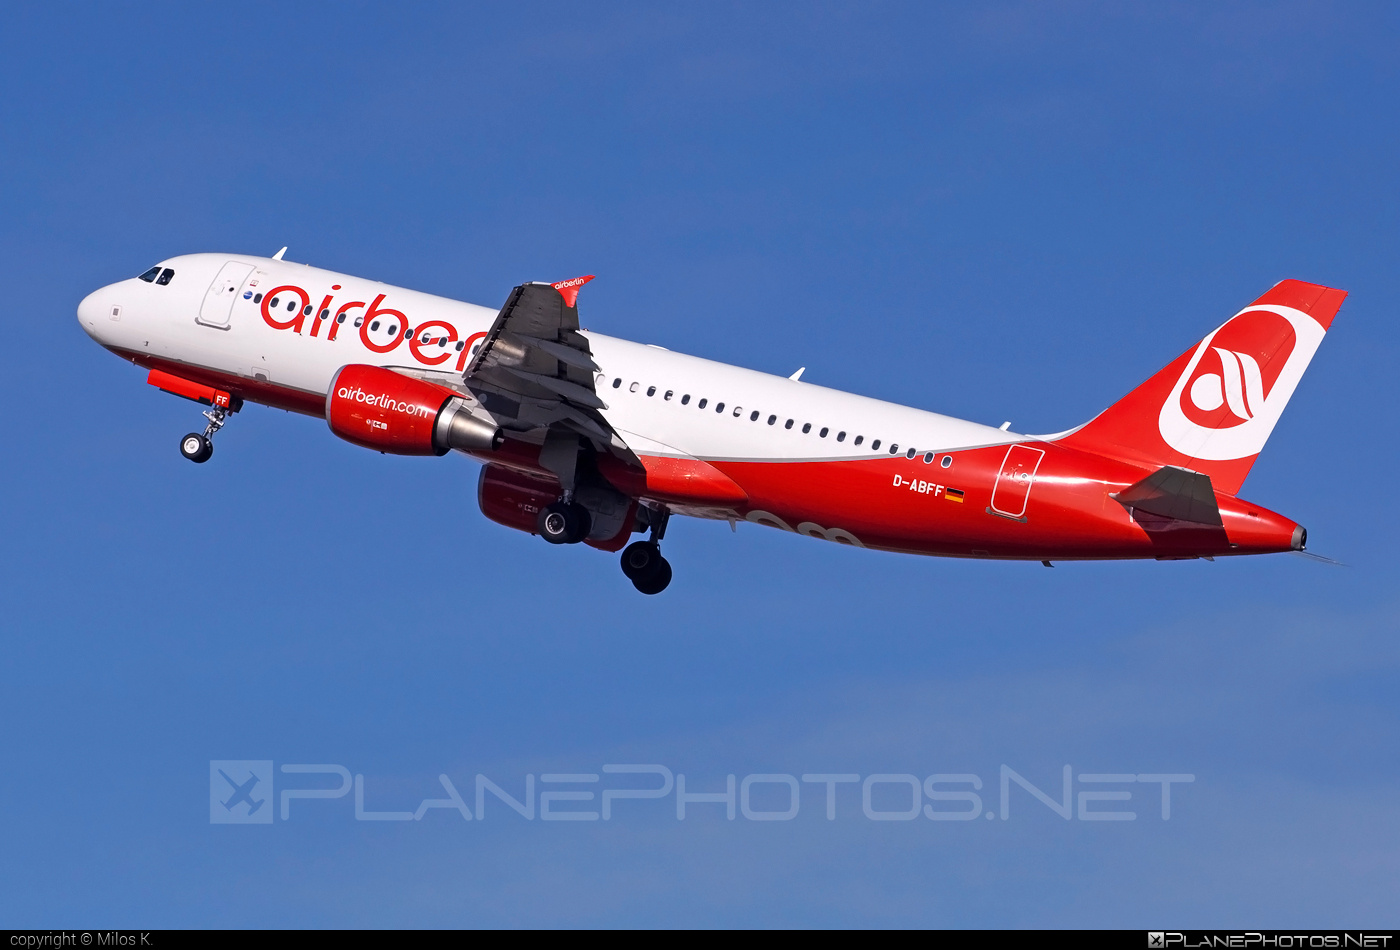 Airbus A320-214 - D-ABFF operated by Air Berlin #a320 #a320family #airberlin #airbus #airbus320